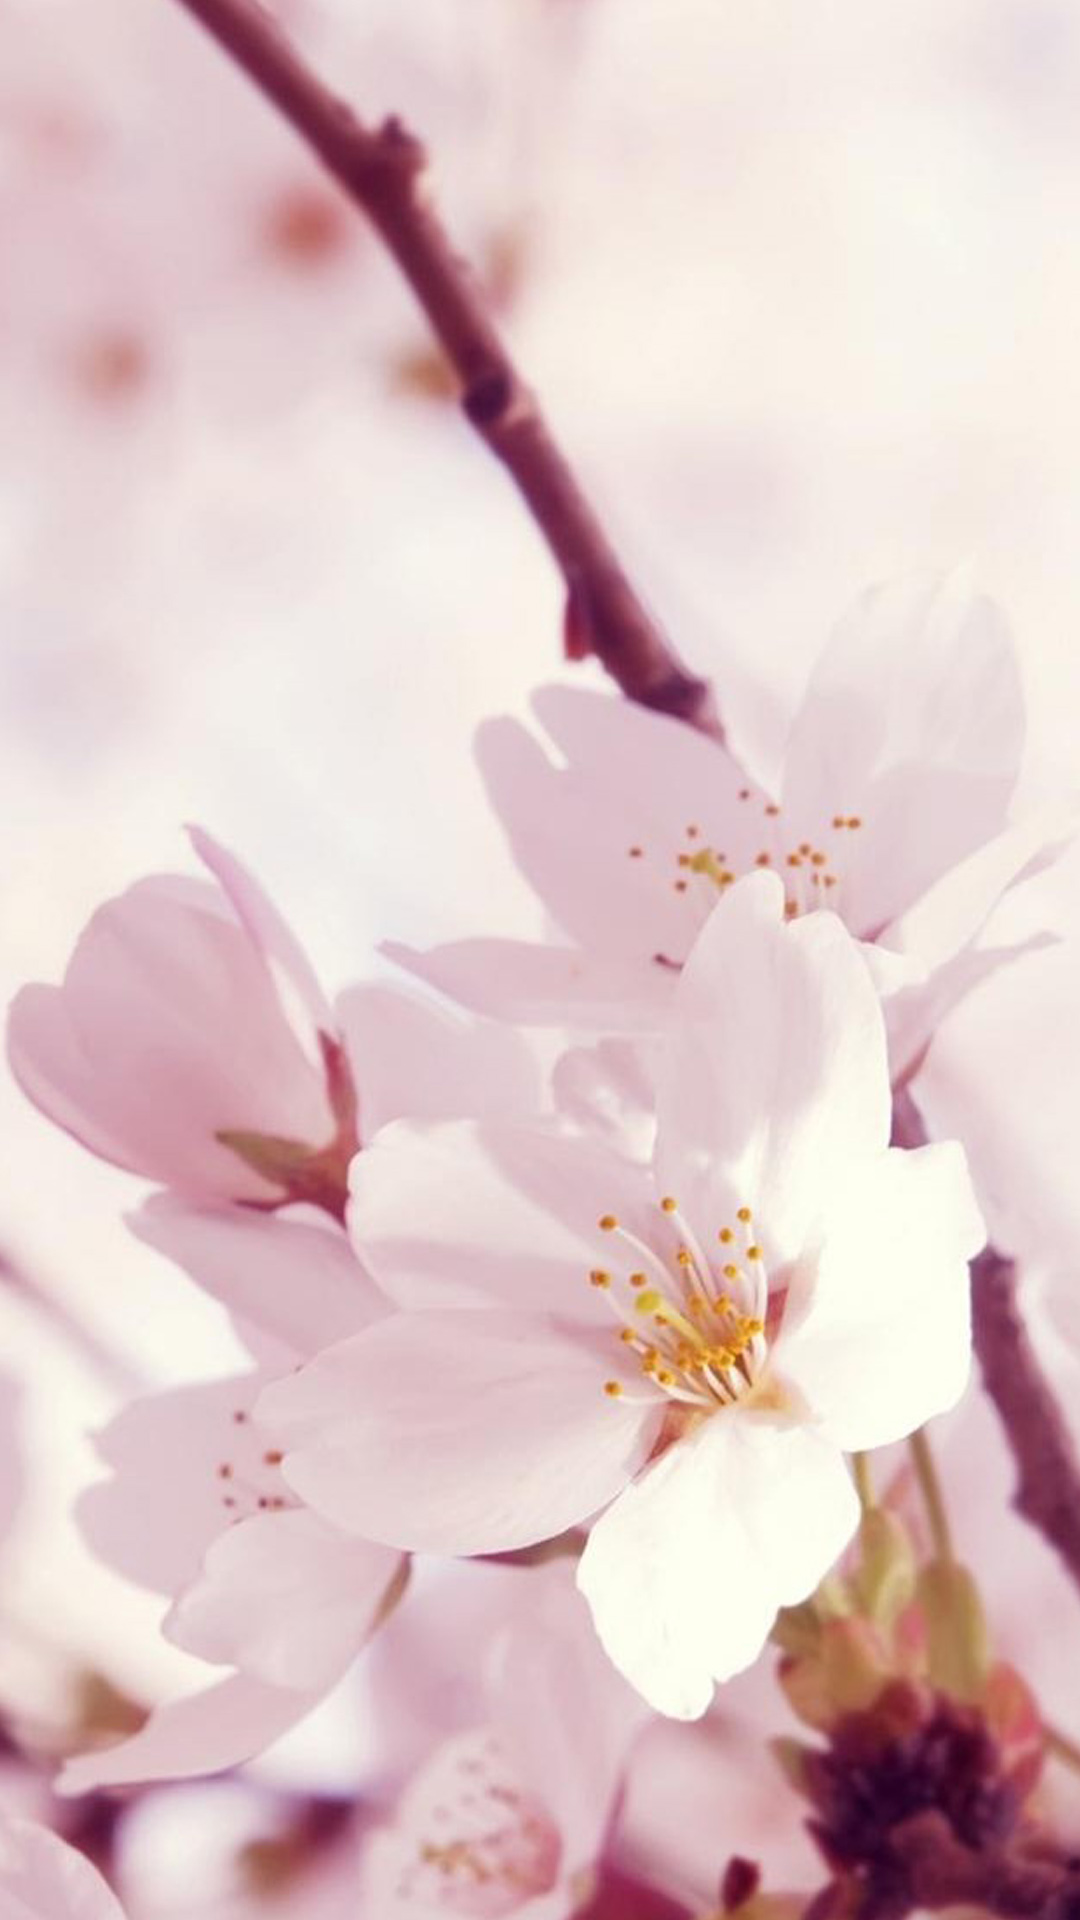 Beautiful-Chinese-Asia-flowers-Sakura-Plum-Blossoms-Lotus-iPhone-collection-mobile-wallpaper-wpc9002689